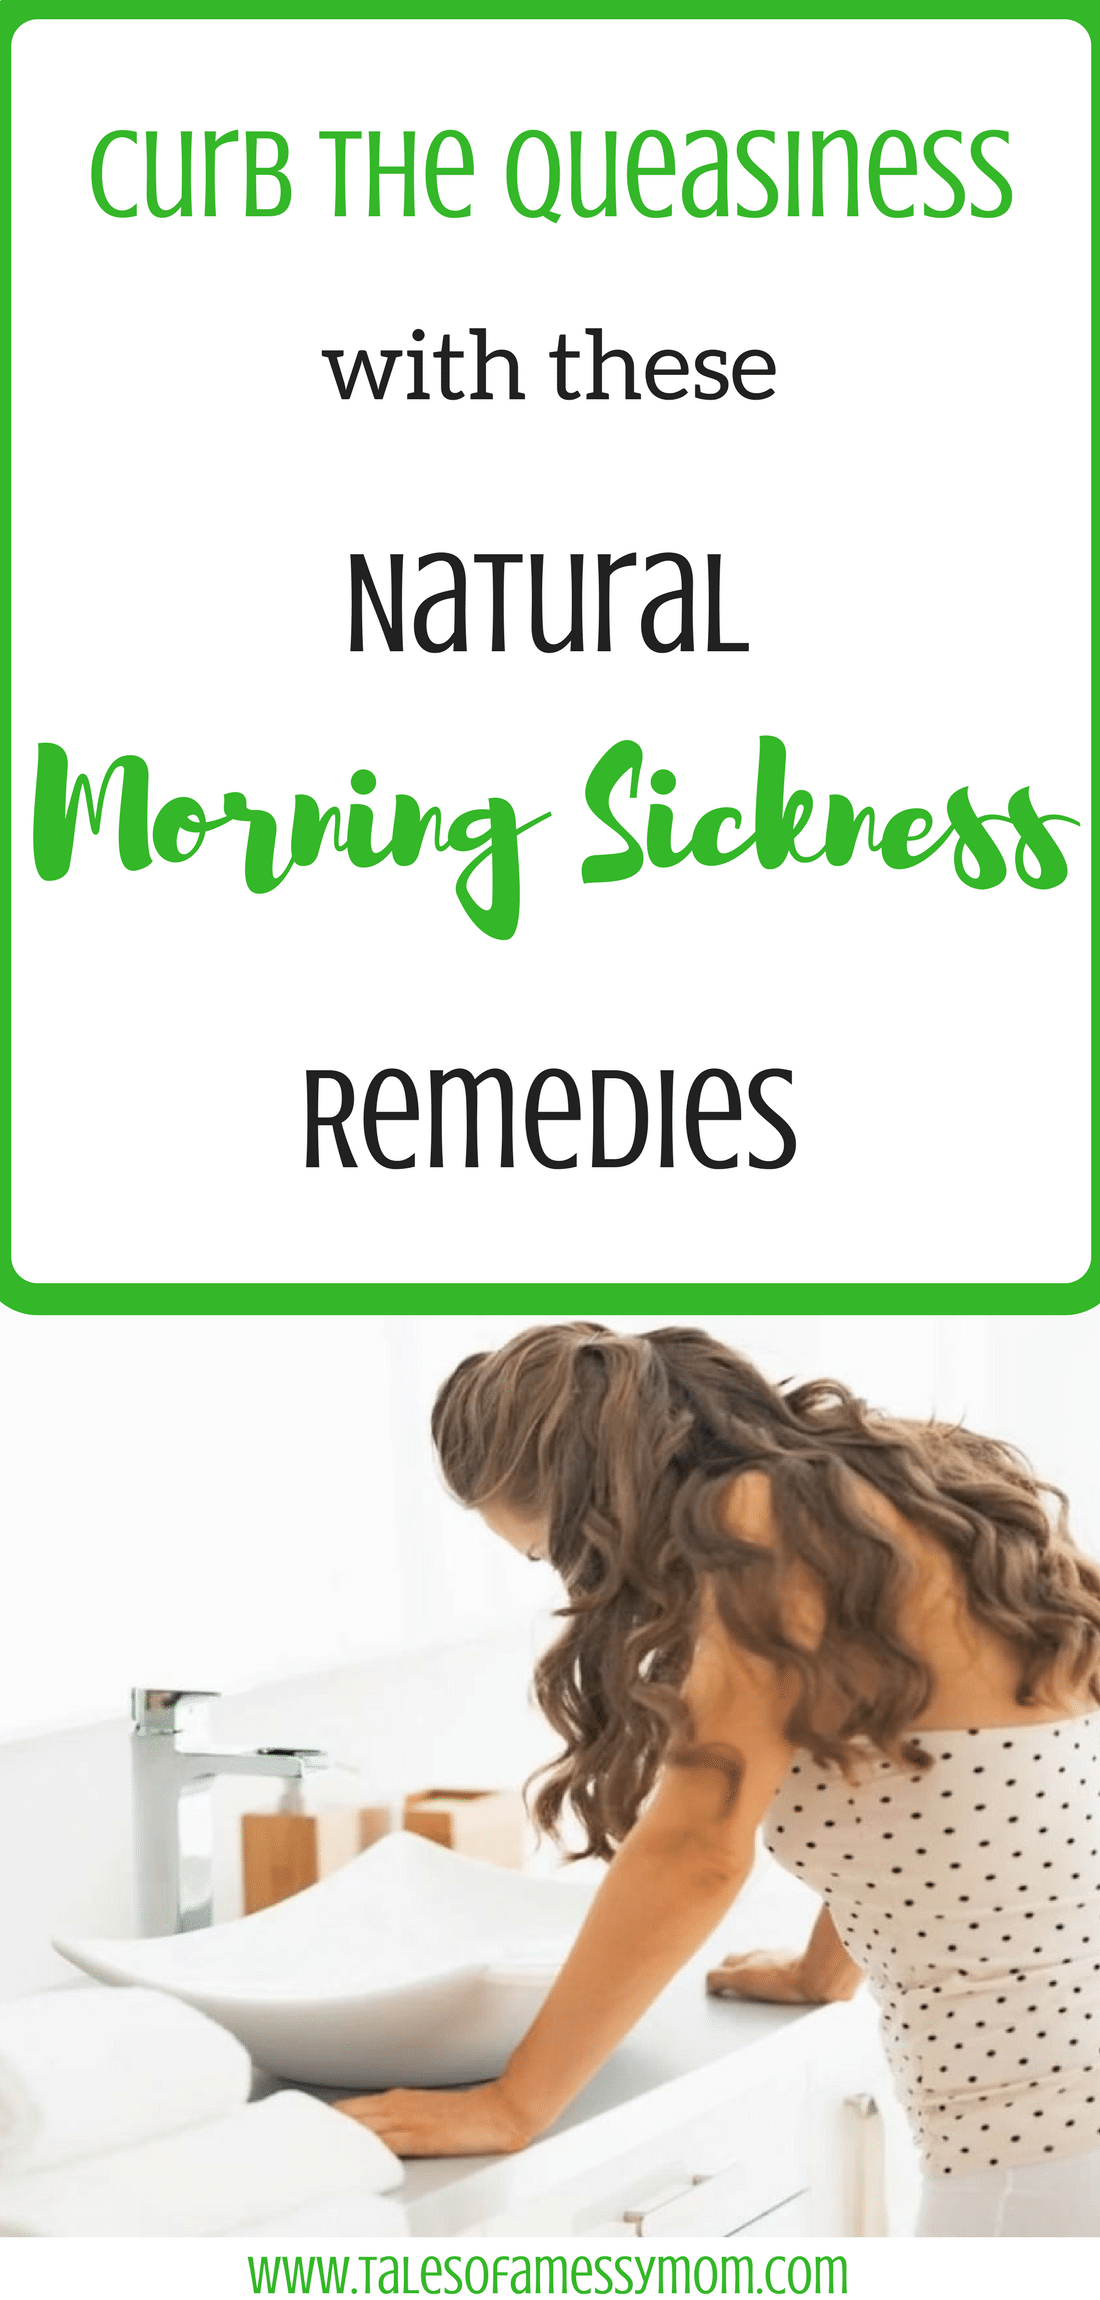 Curb the queasiness with these natural morning sickness remedies. http://www.talesofamessymom.com